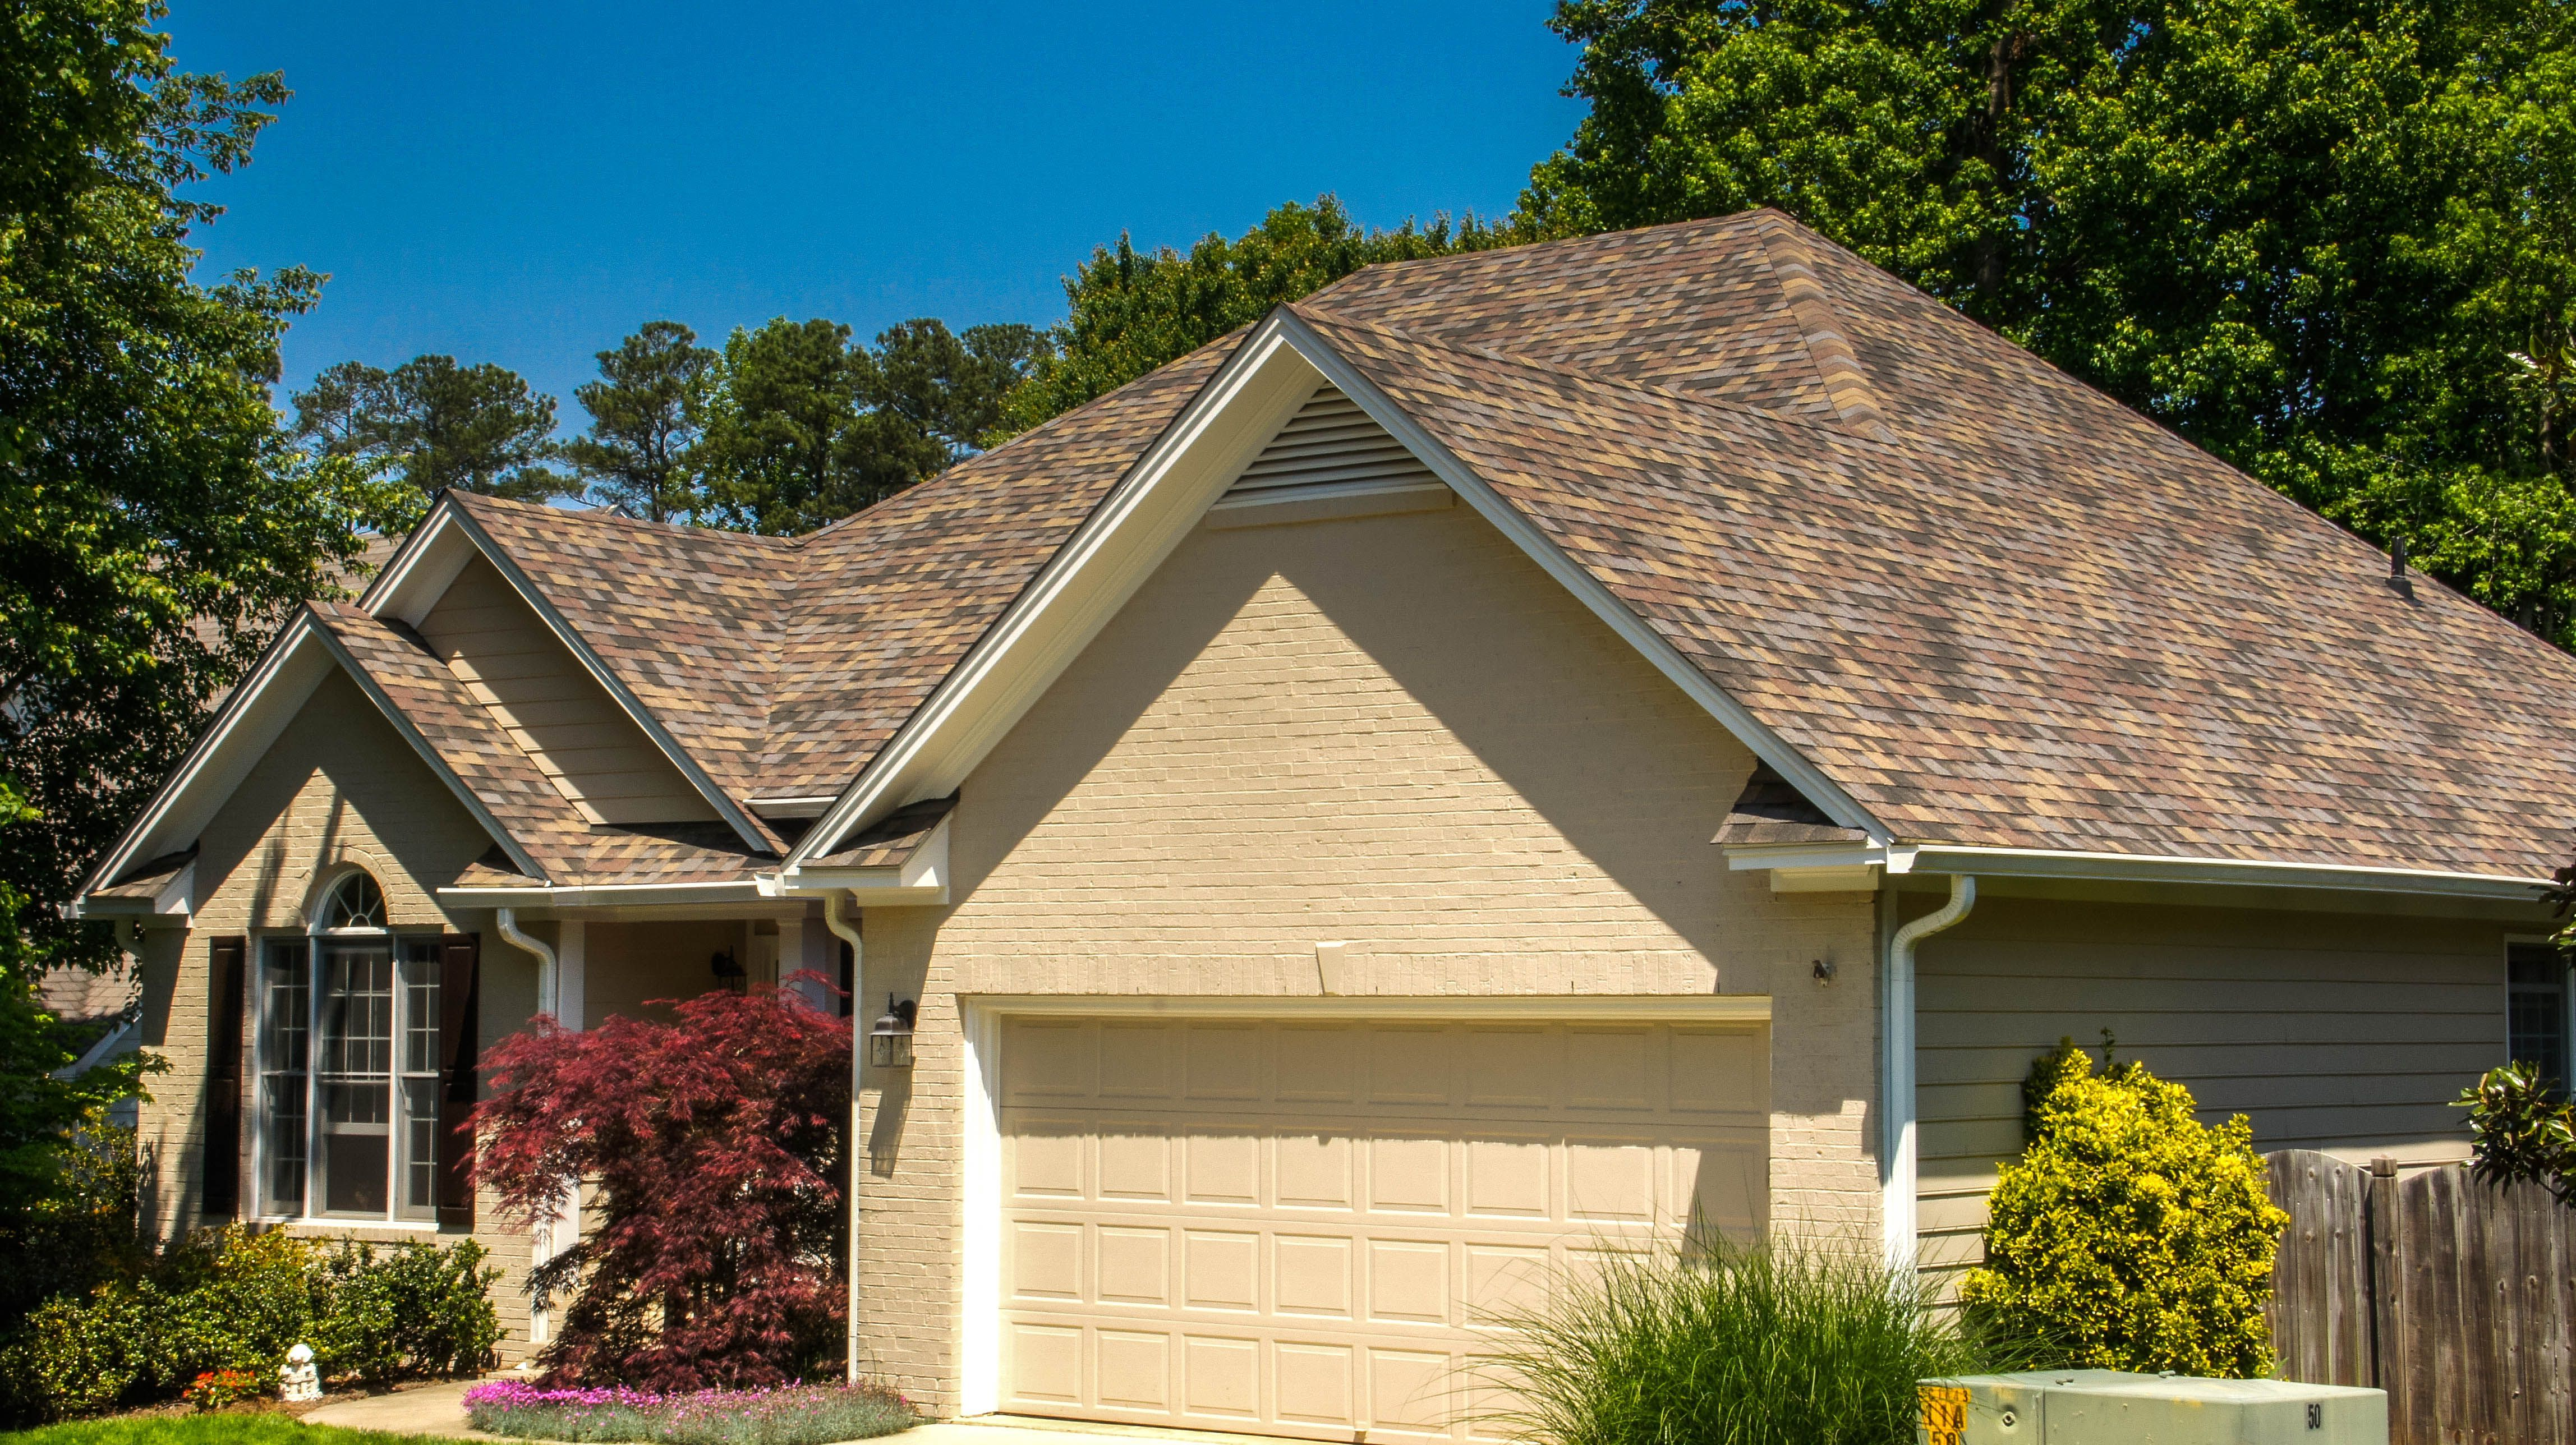 Best Lowes Summer Harvest Shingles On House Google Search 400 x 300